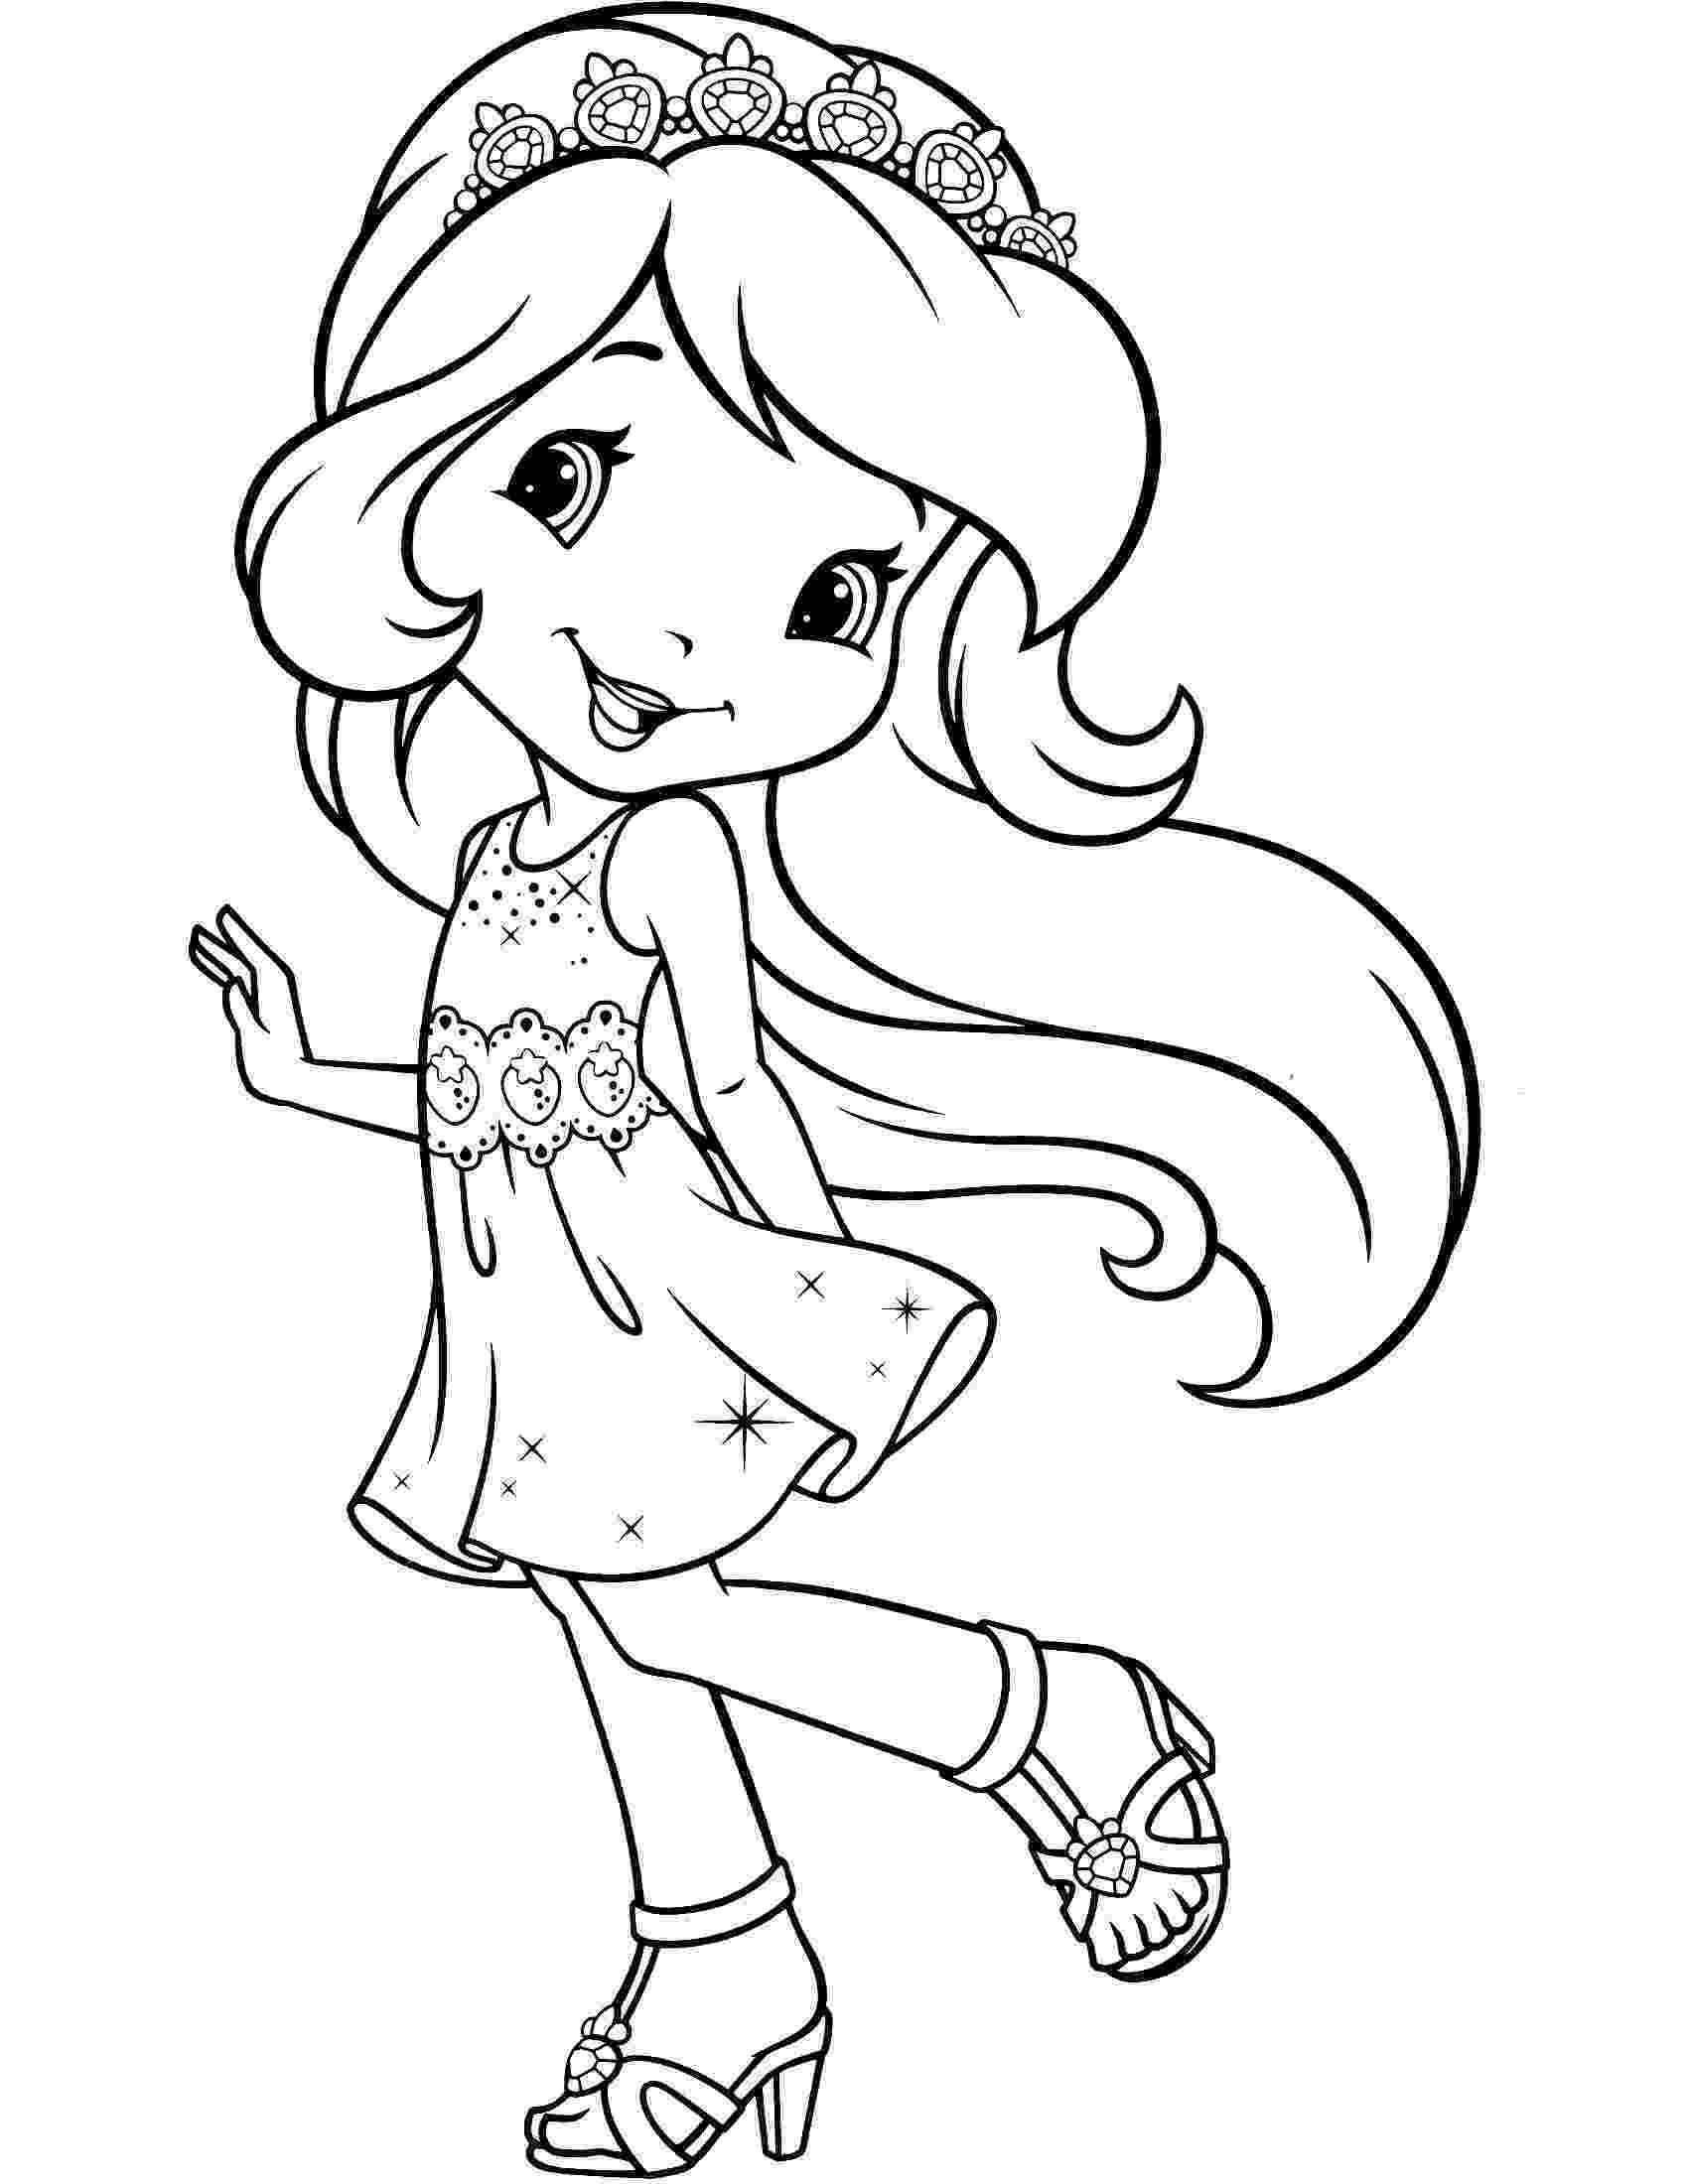 coloring pages strawberry shortcake strawberry shortcake coloring pages coloring shortcake pages strawberry